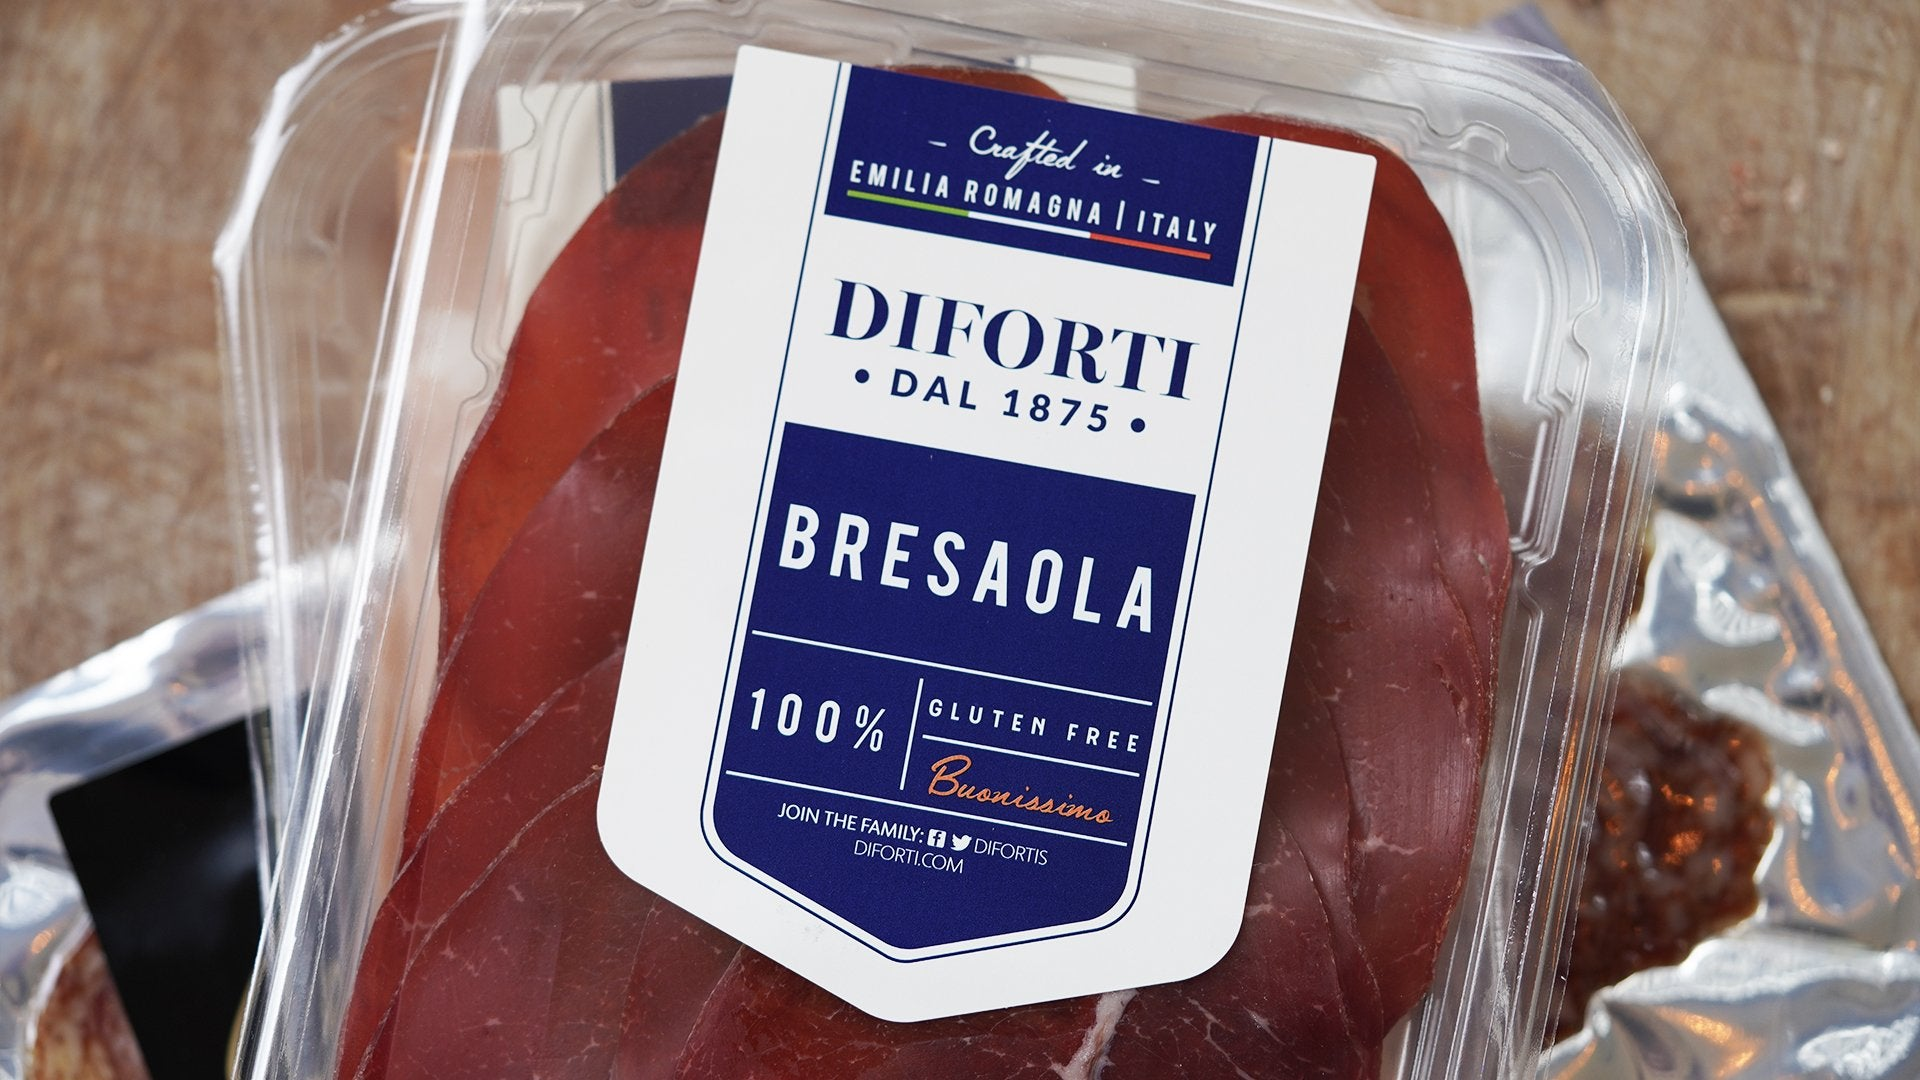 Diforti Bresaola Cured Beef for sale - Parsons Nose